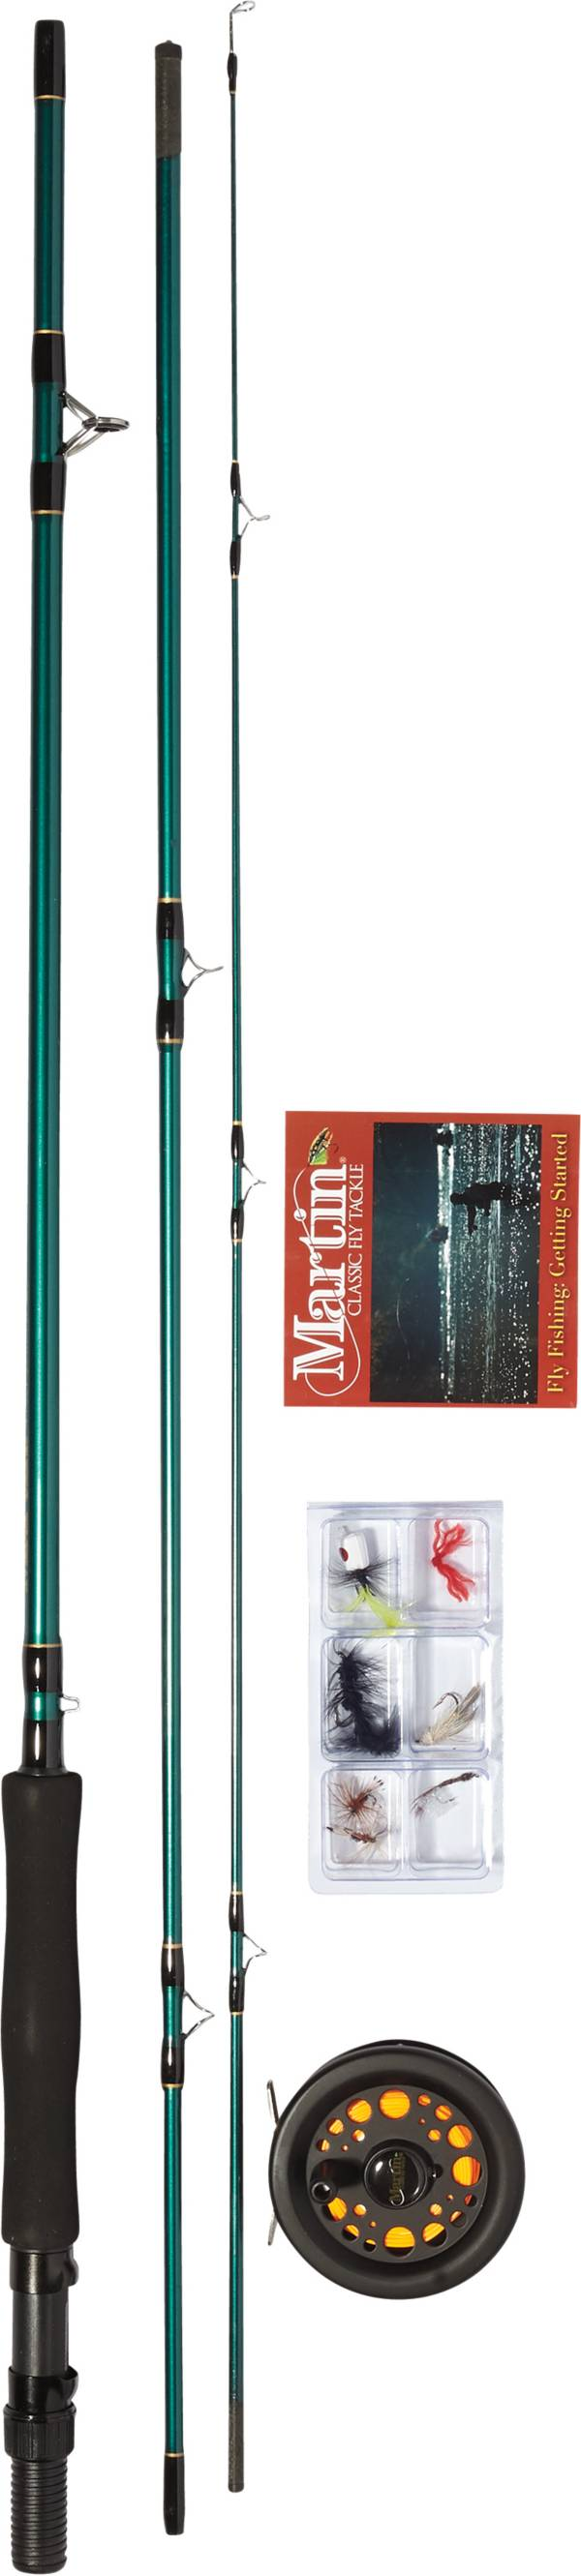 Martin Complete Fly Fishing Kit product image